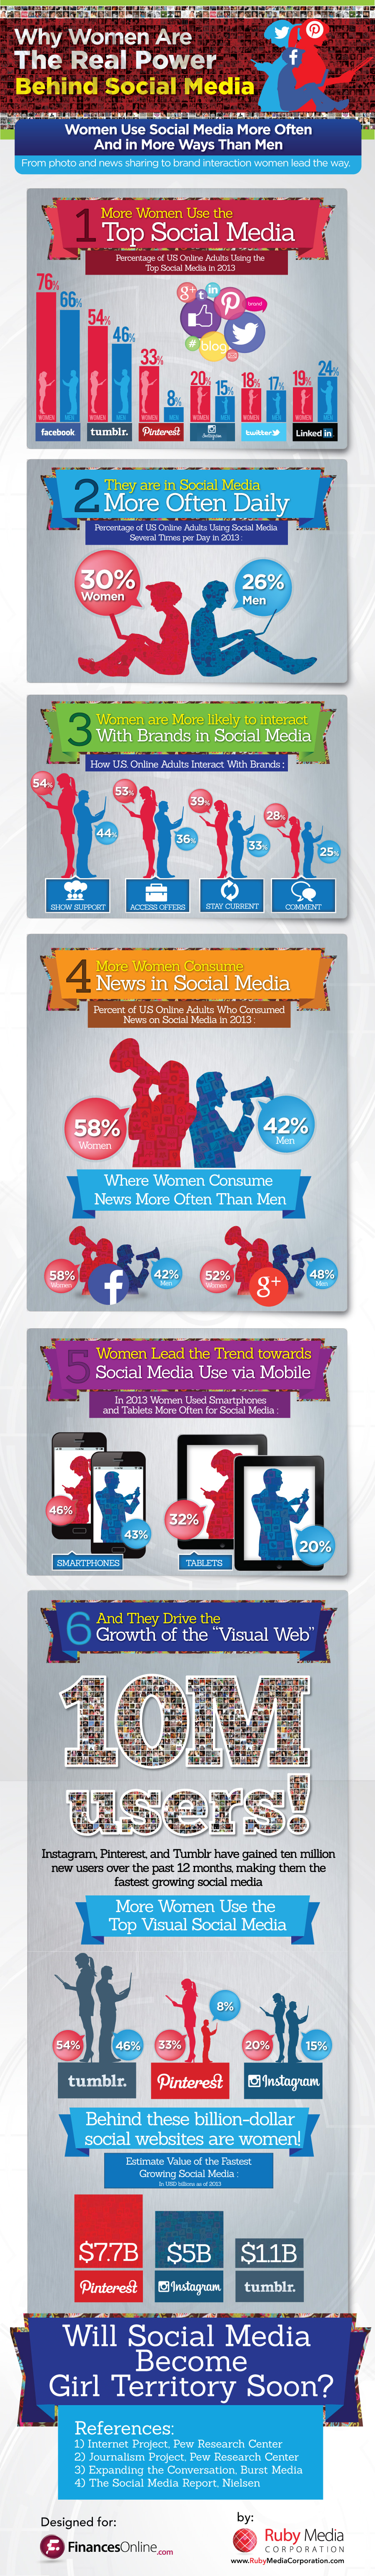 Most Popular Social Media Sites Like Tumblr Or Pinterest Owe Their Financial Success To Women